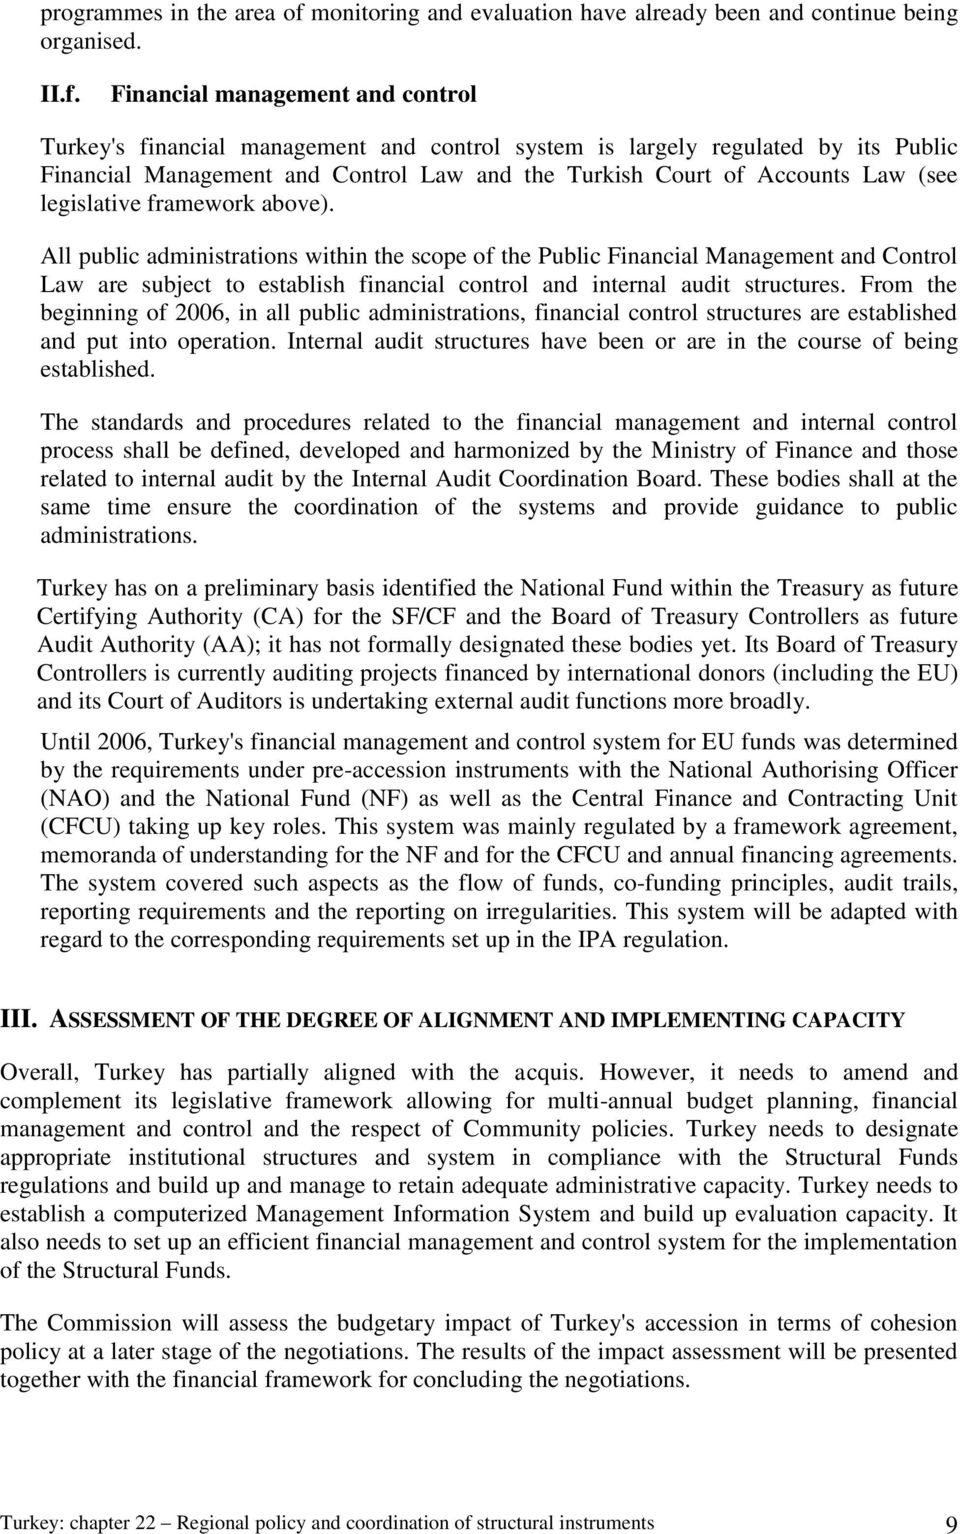 Financial management and control Turkey's financial management and control system is largely regulated by its Public Financial Management and Control Law and the Turkish Court of Accounts Law (see